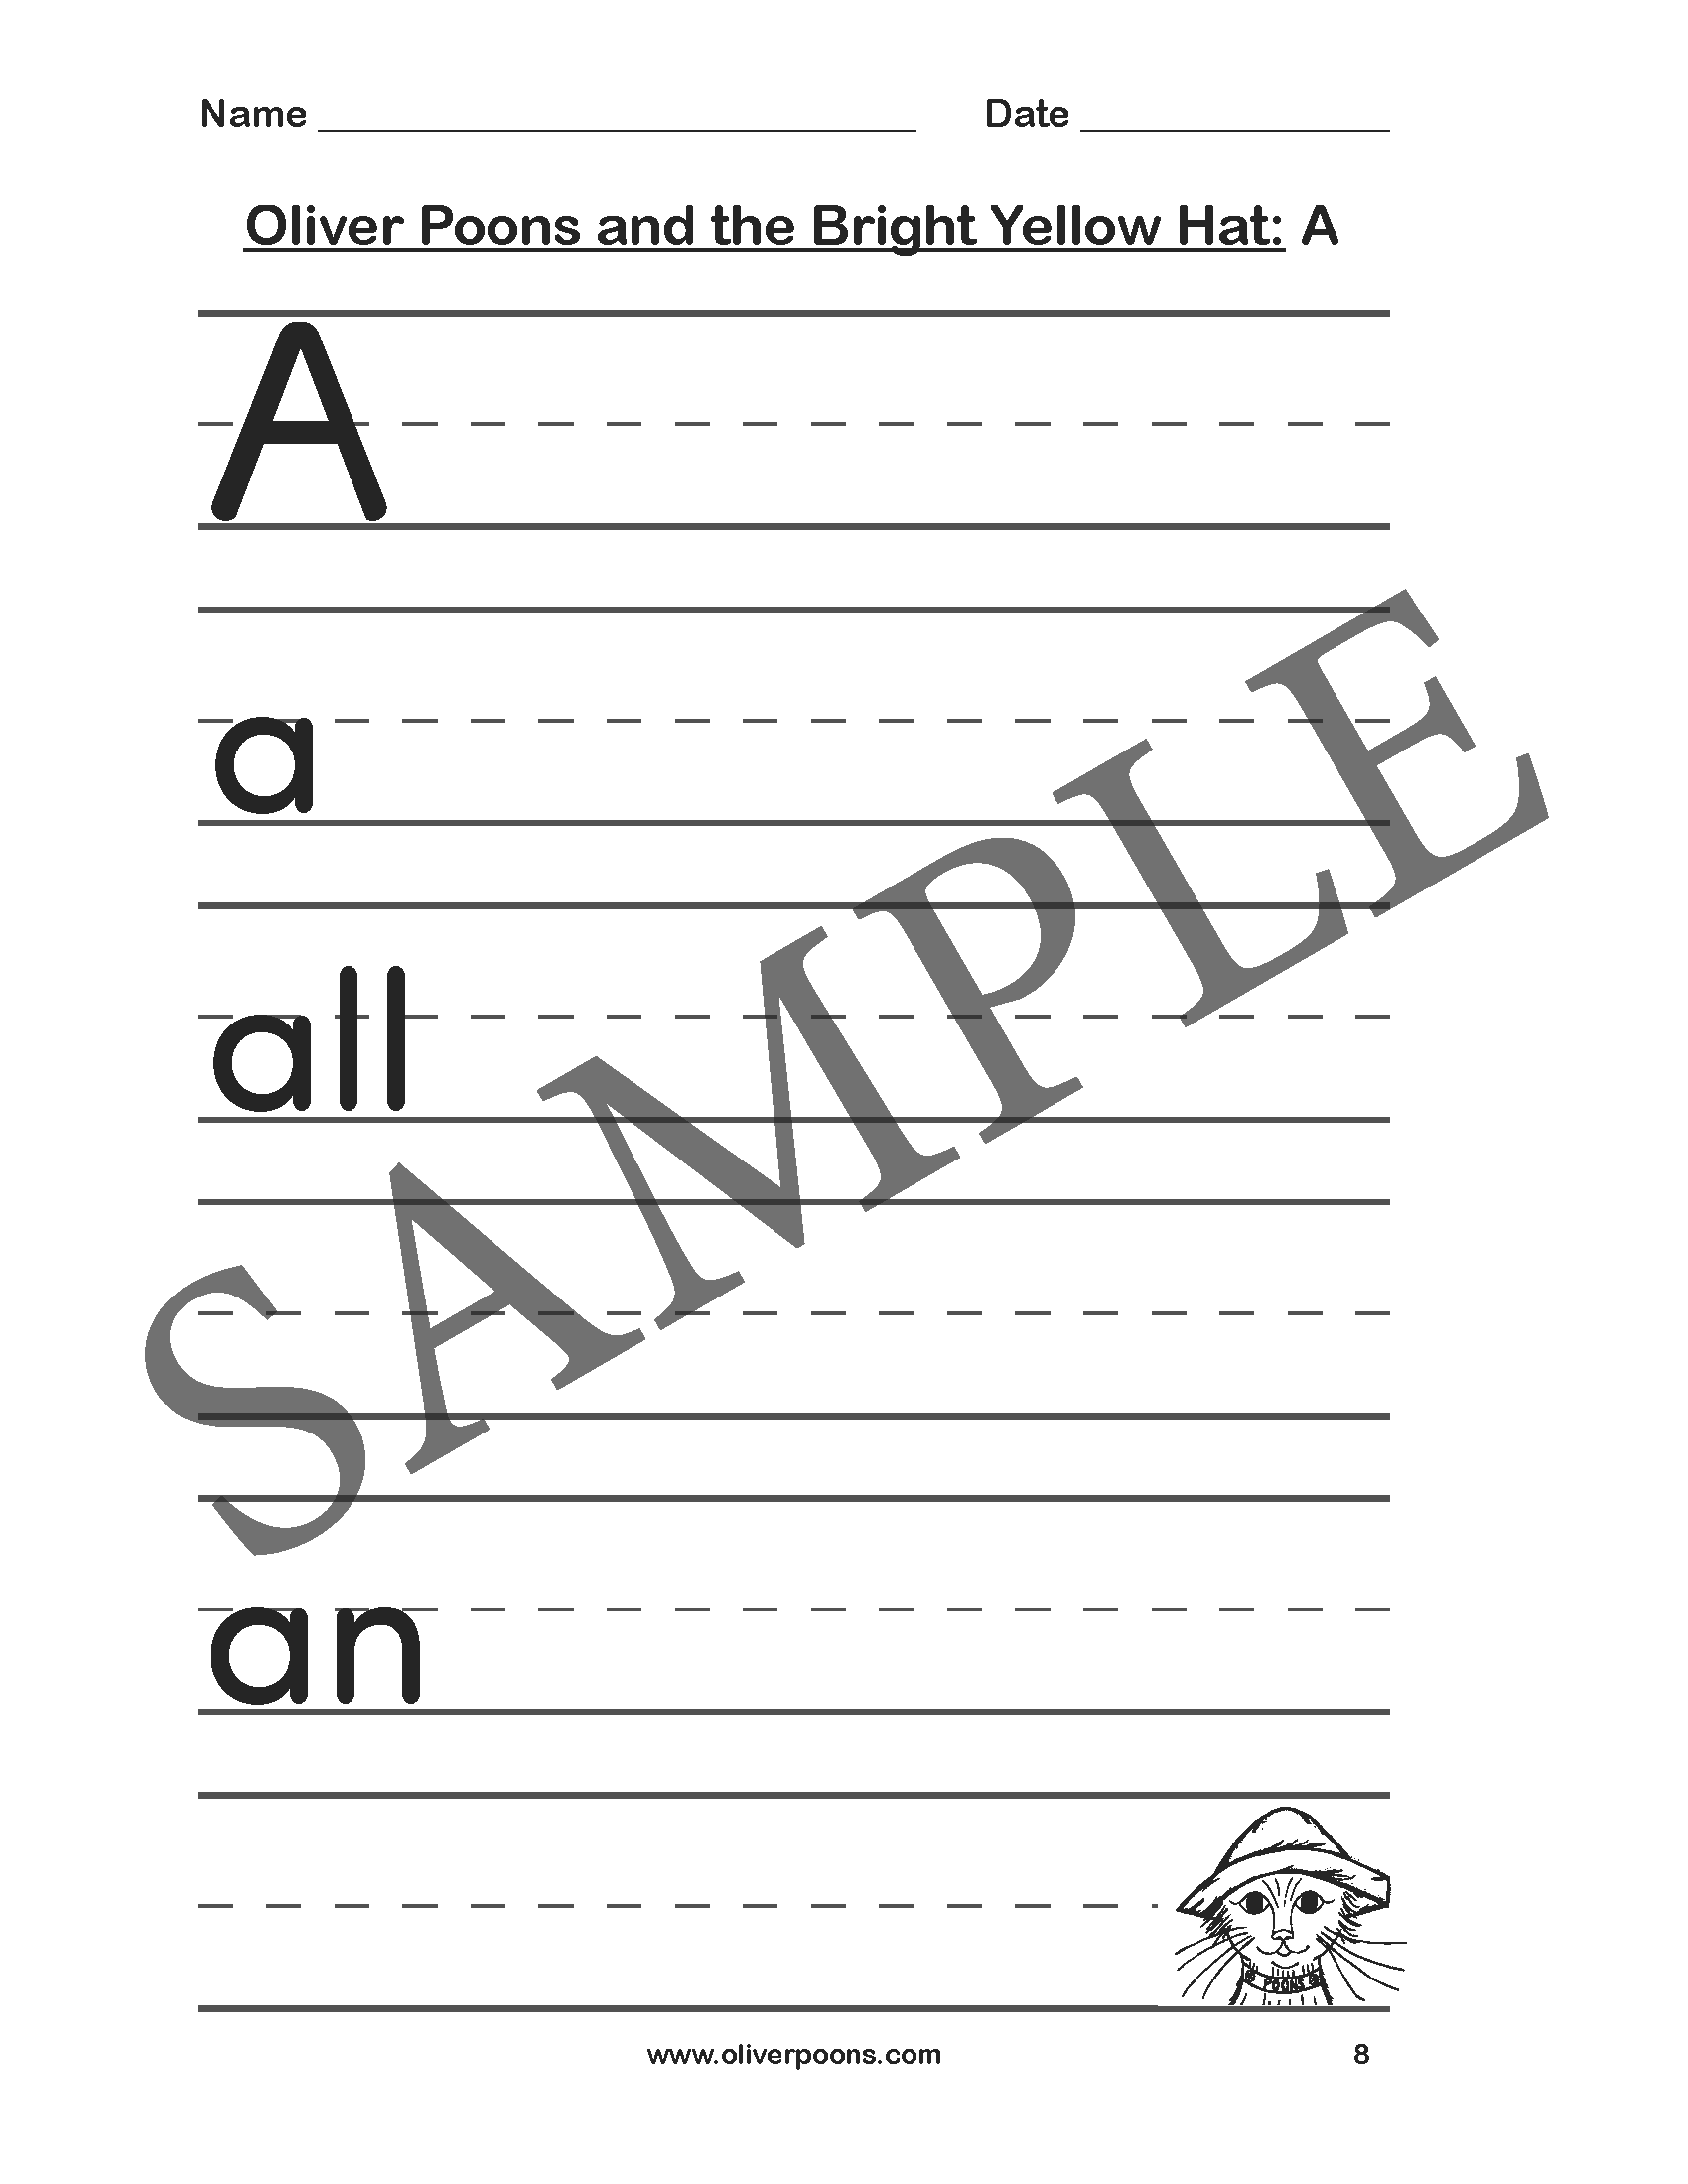 Oliver Poons And The Bright Yellow Hat Worksheets And Activities Pre K Through Grade 2